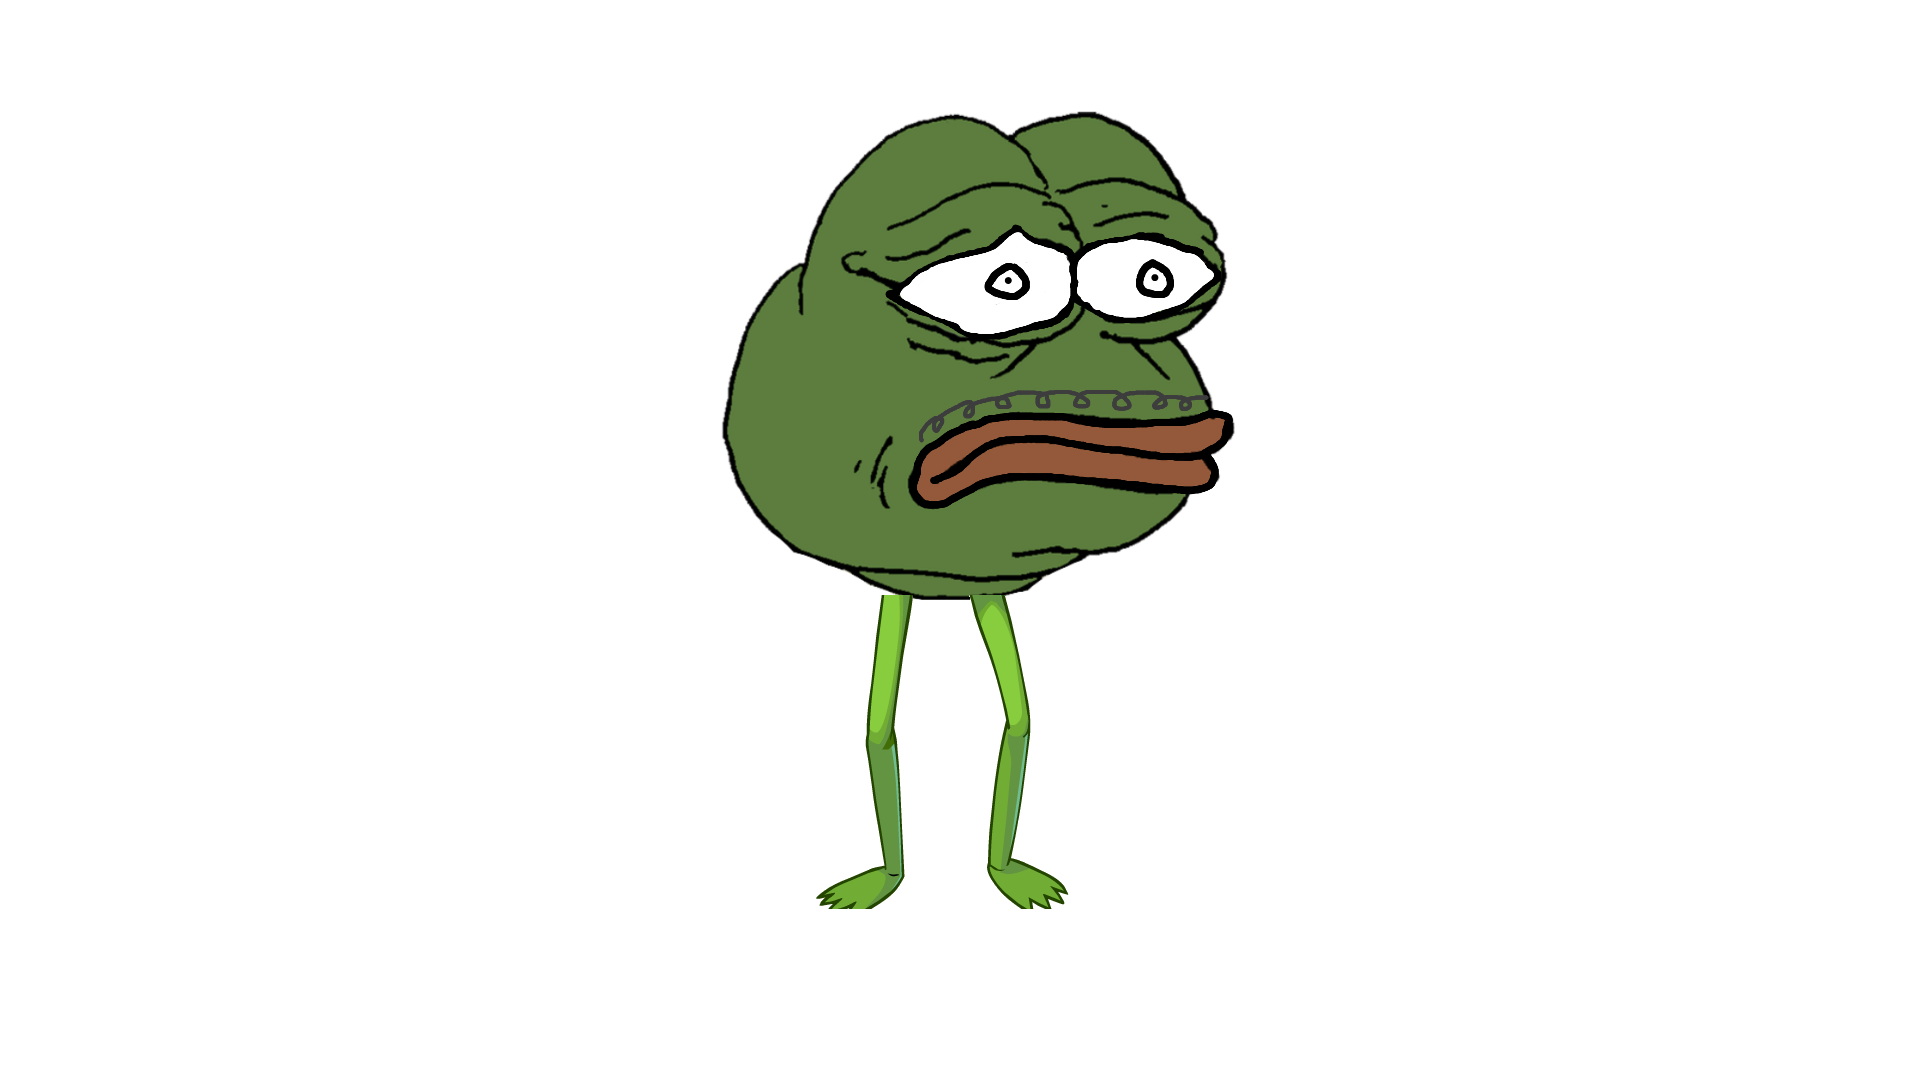 Image battle for mlg. Png pepe svg black and white stock